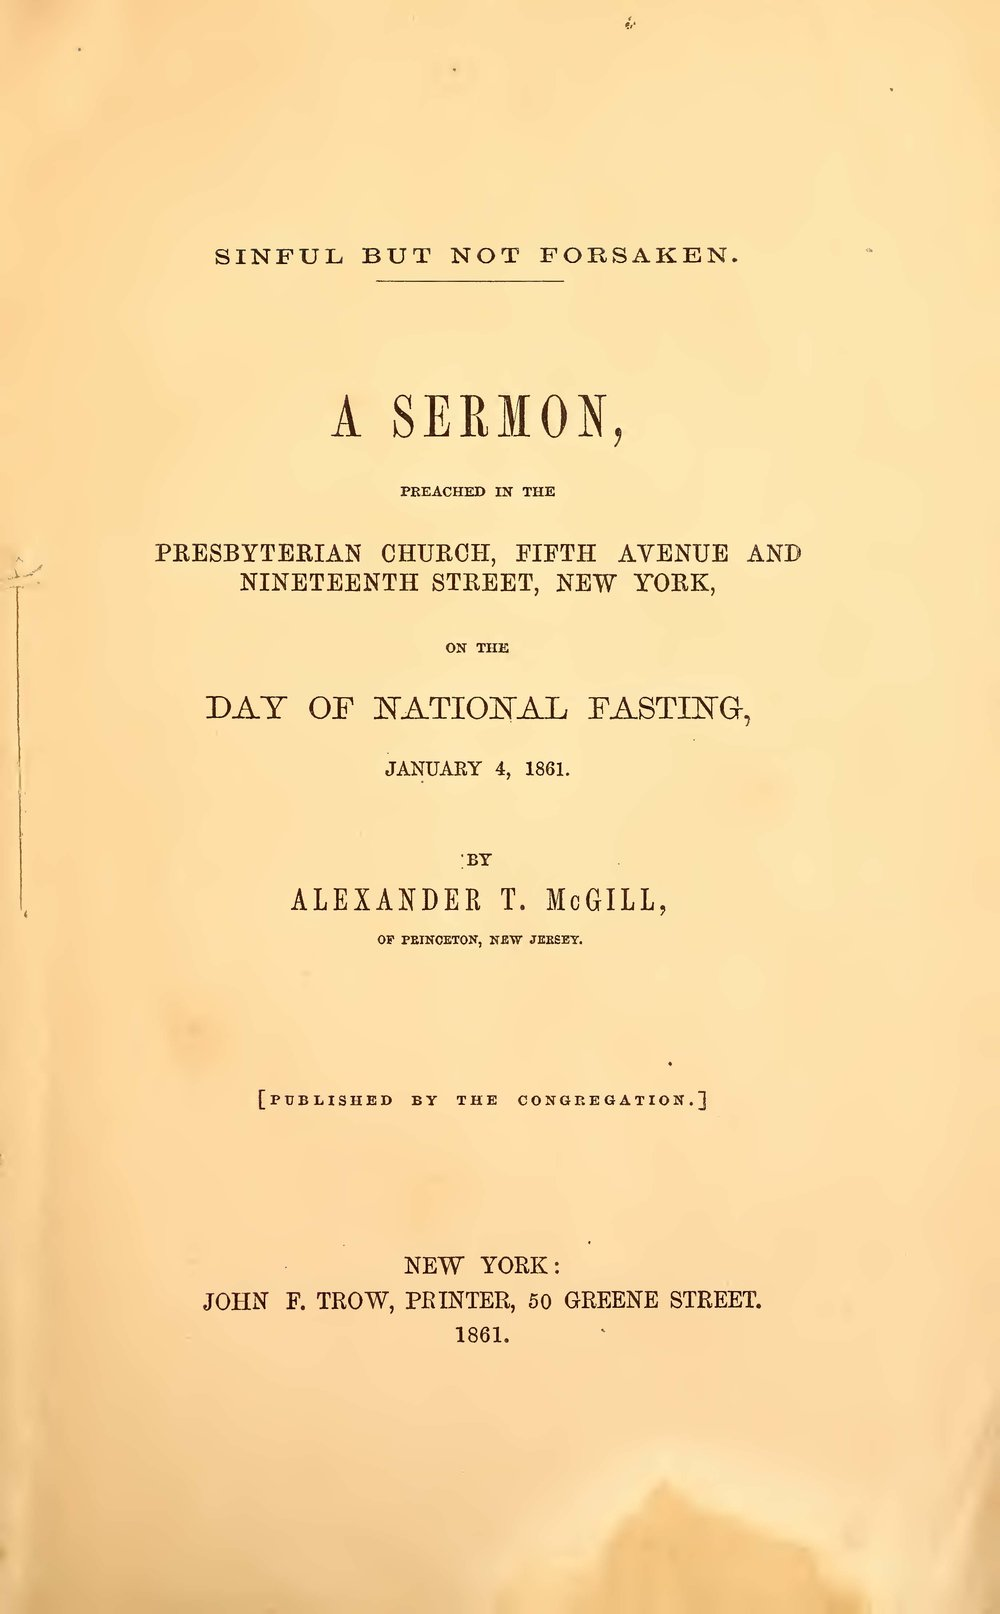 McGill, Alexander Taggart, Sinful But Not Forsaken Title Page.jpg